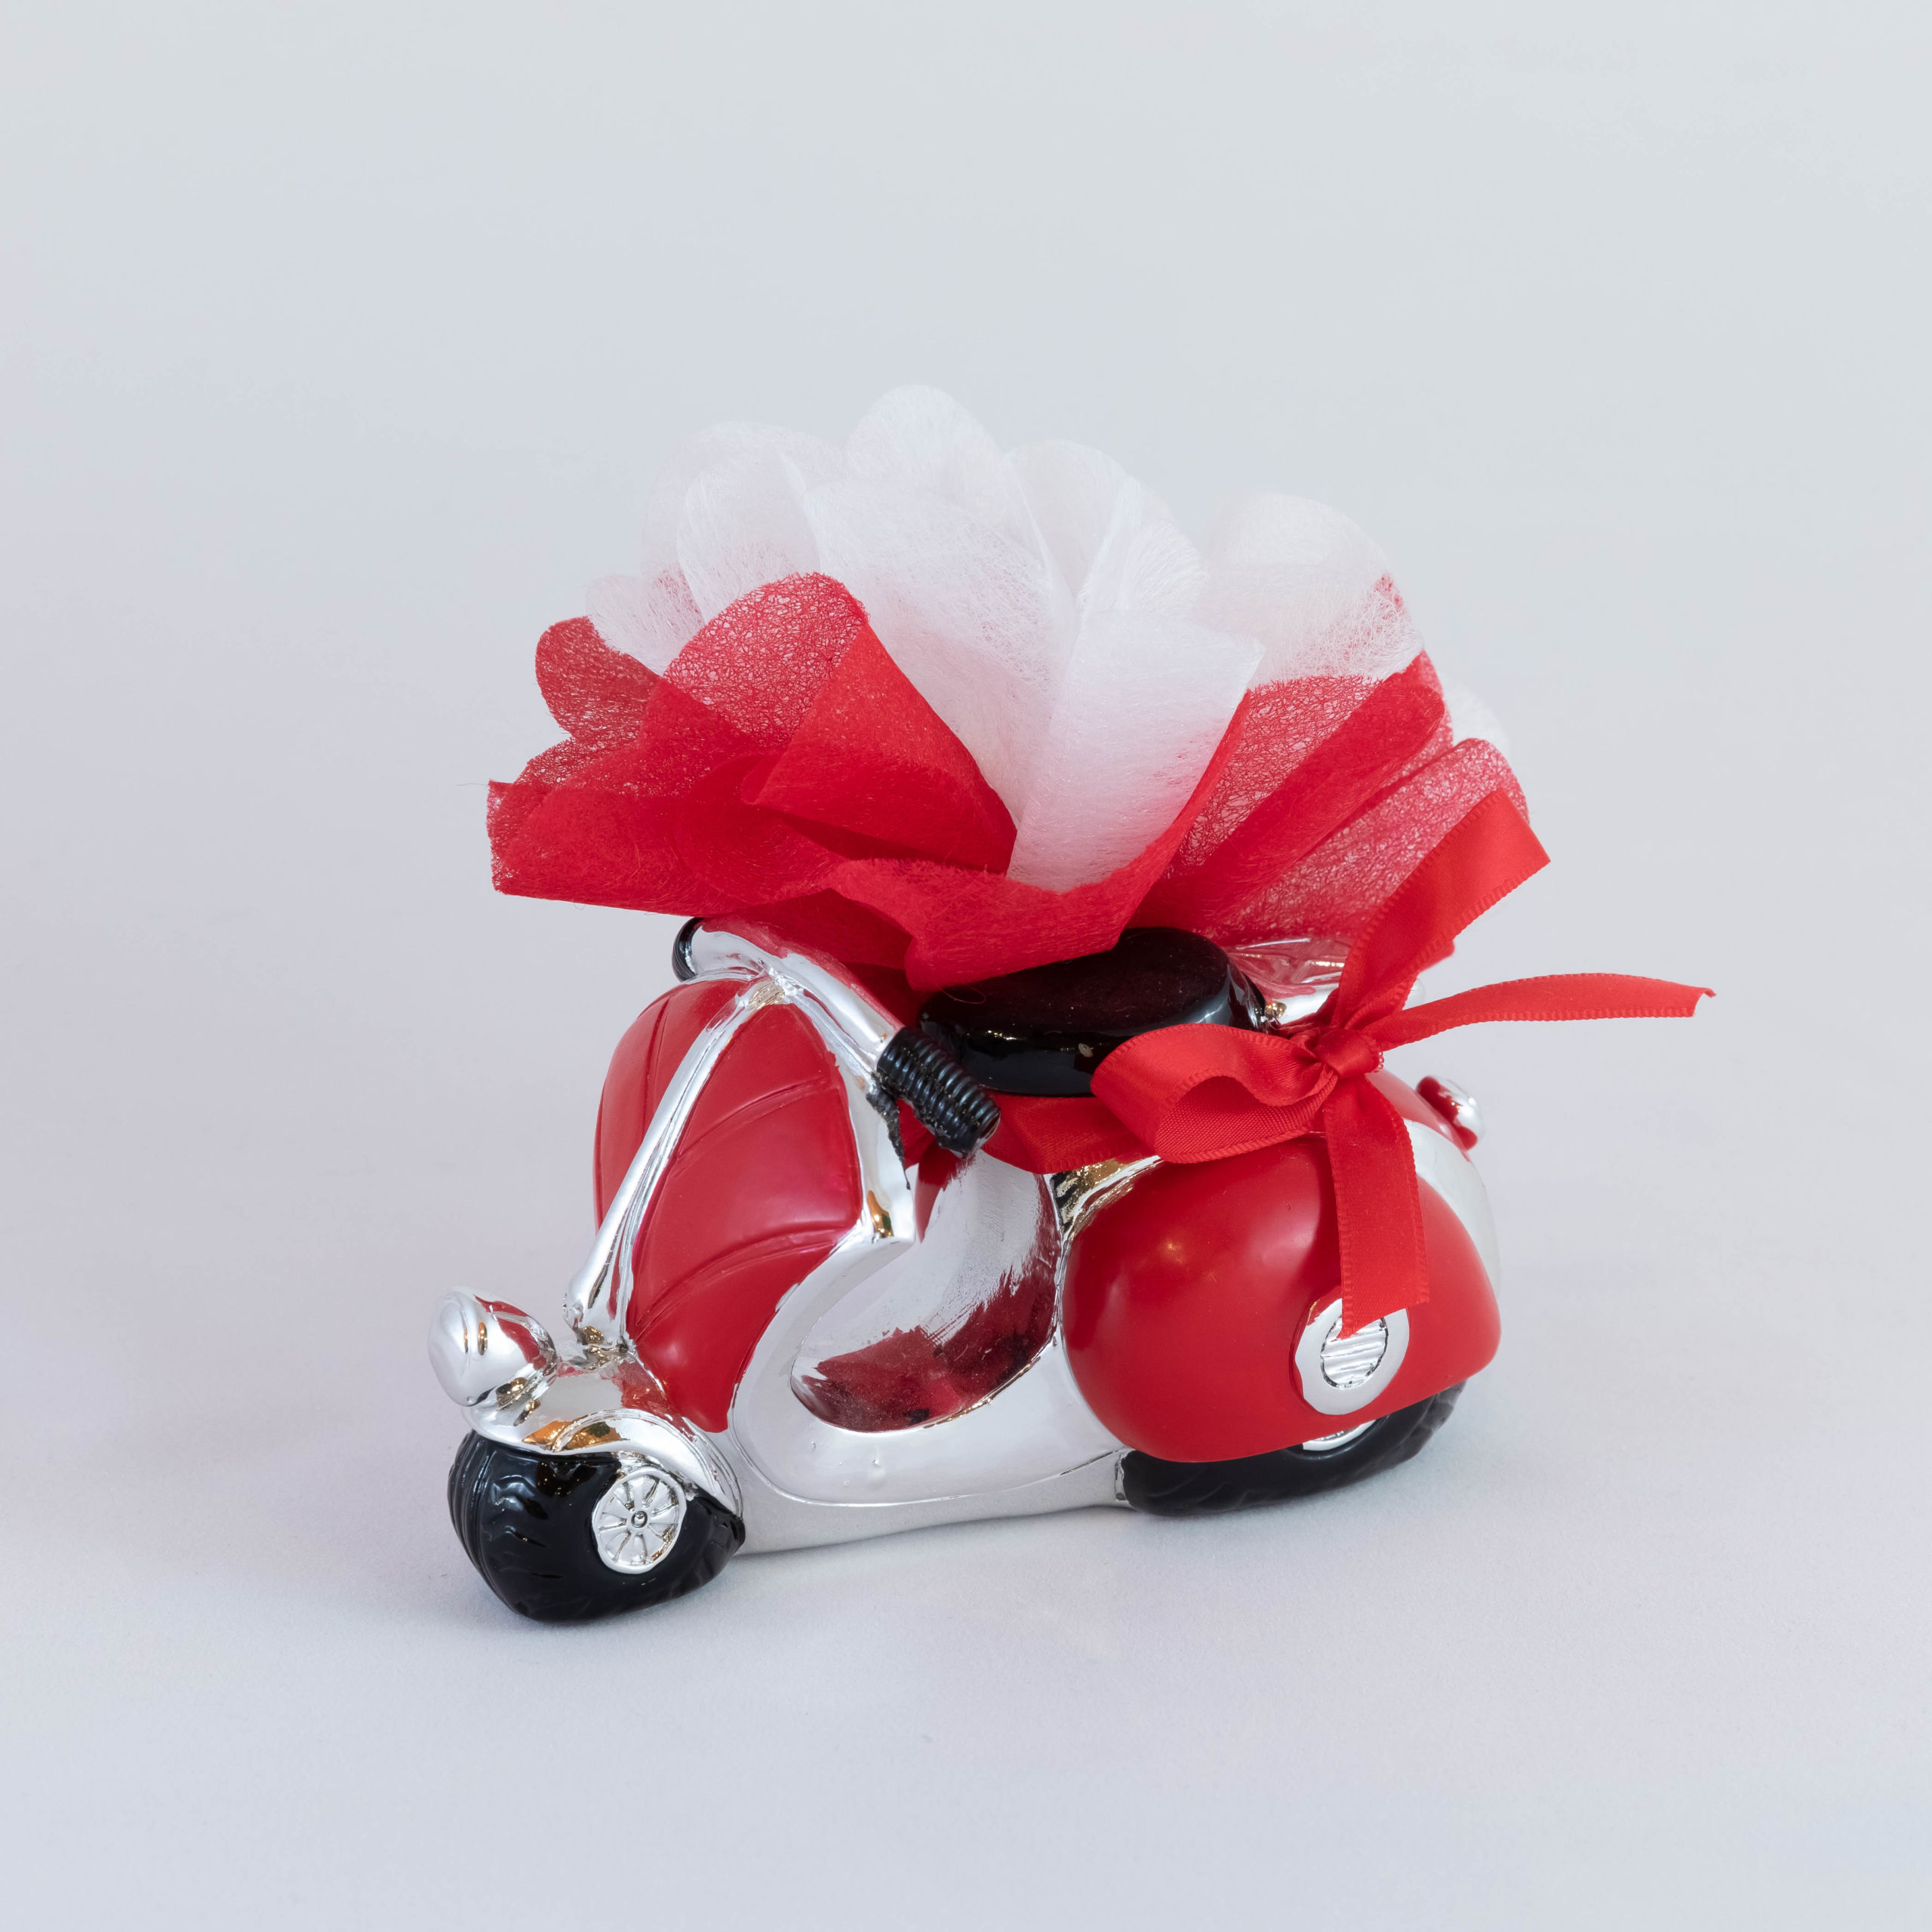 Scooter rouge - Véhicule Image